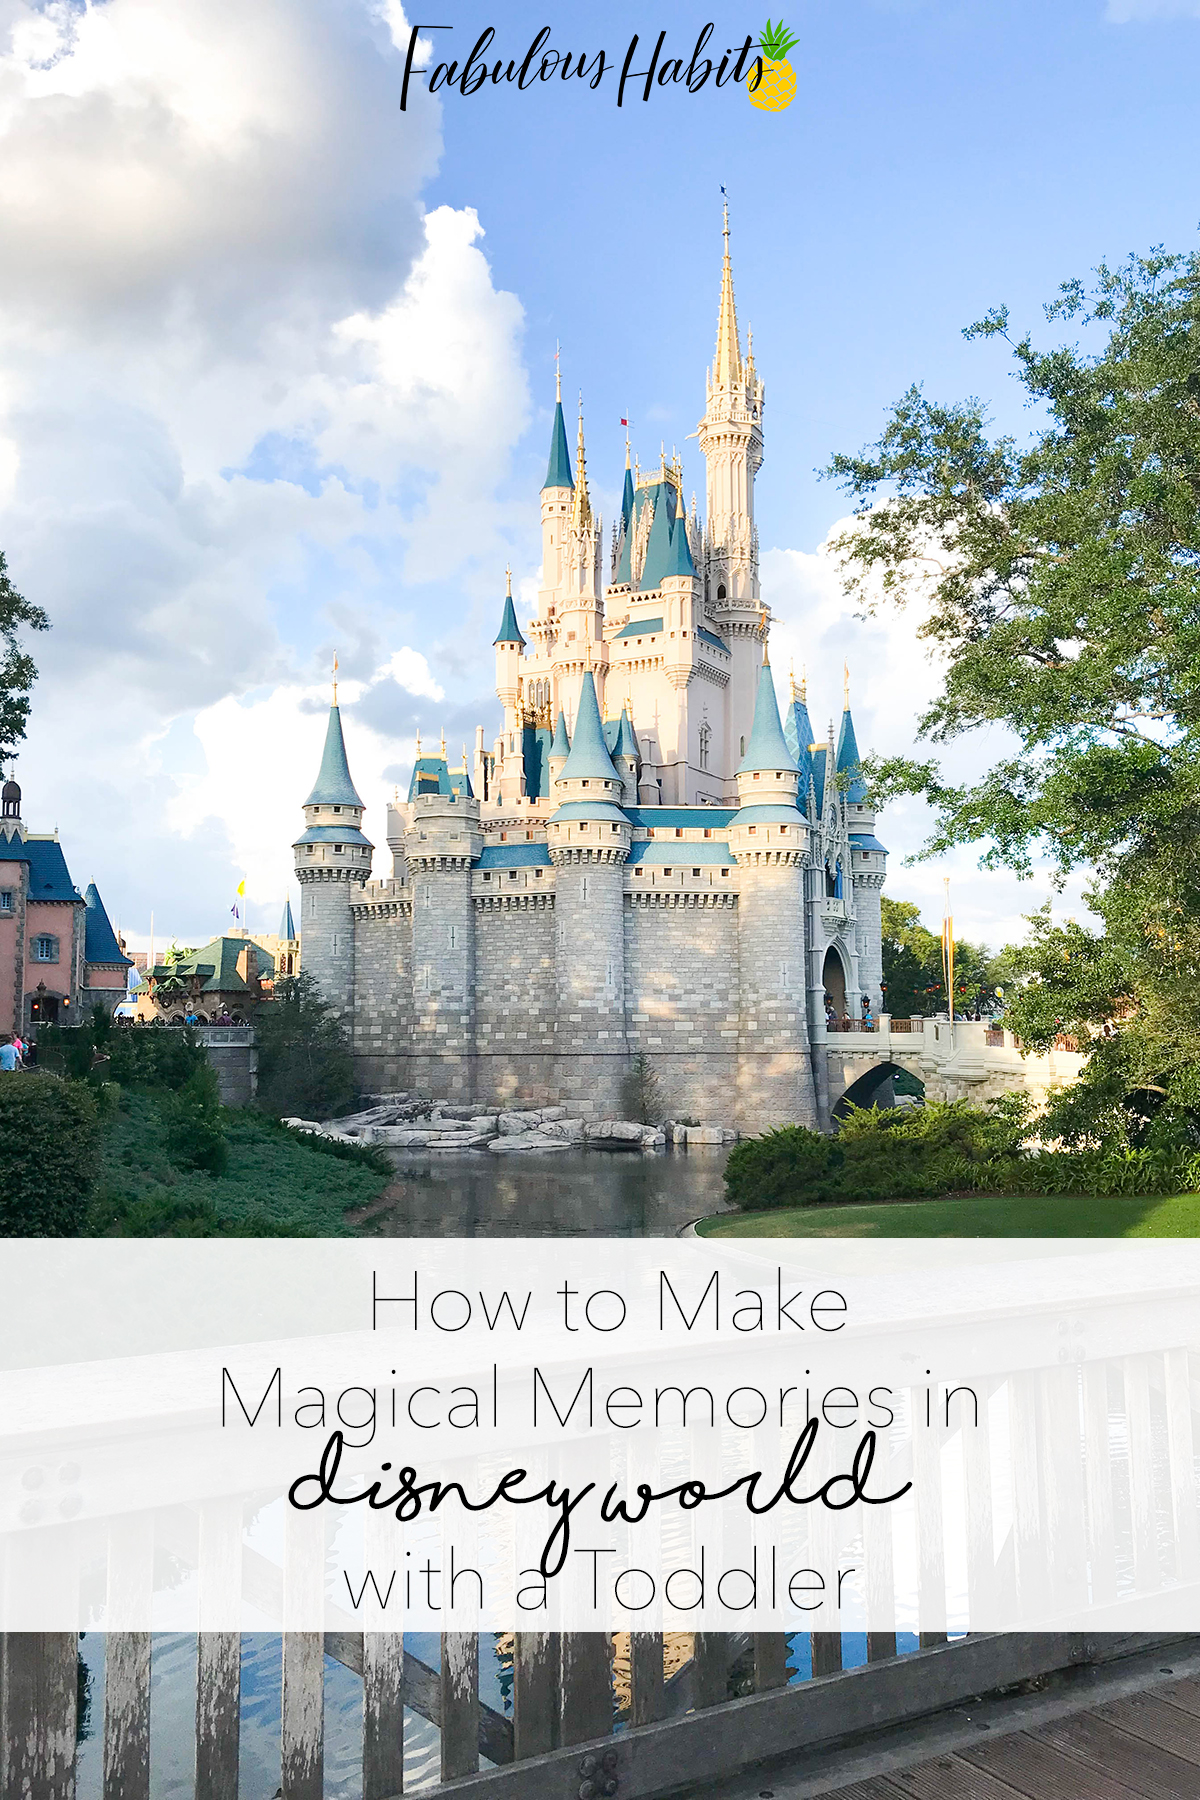 Enjoy your trip to the max. Here's our family's Disney to-do list and how we make every moment magical!